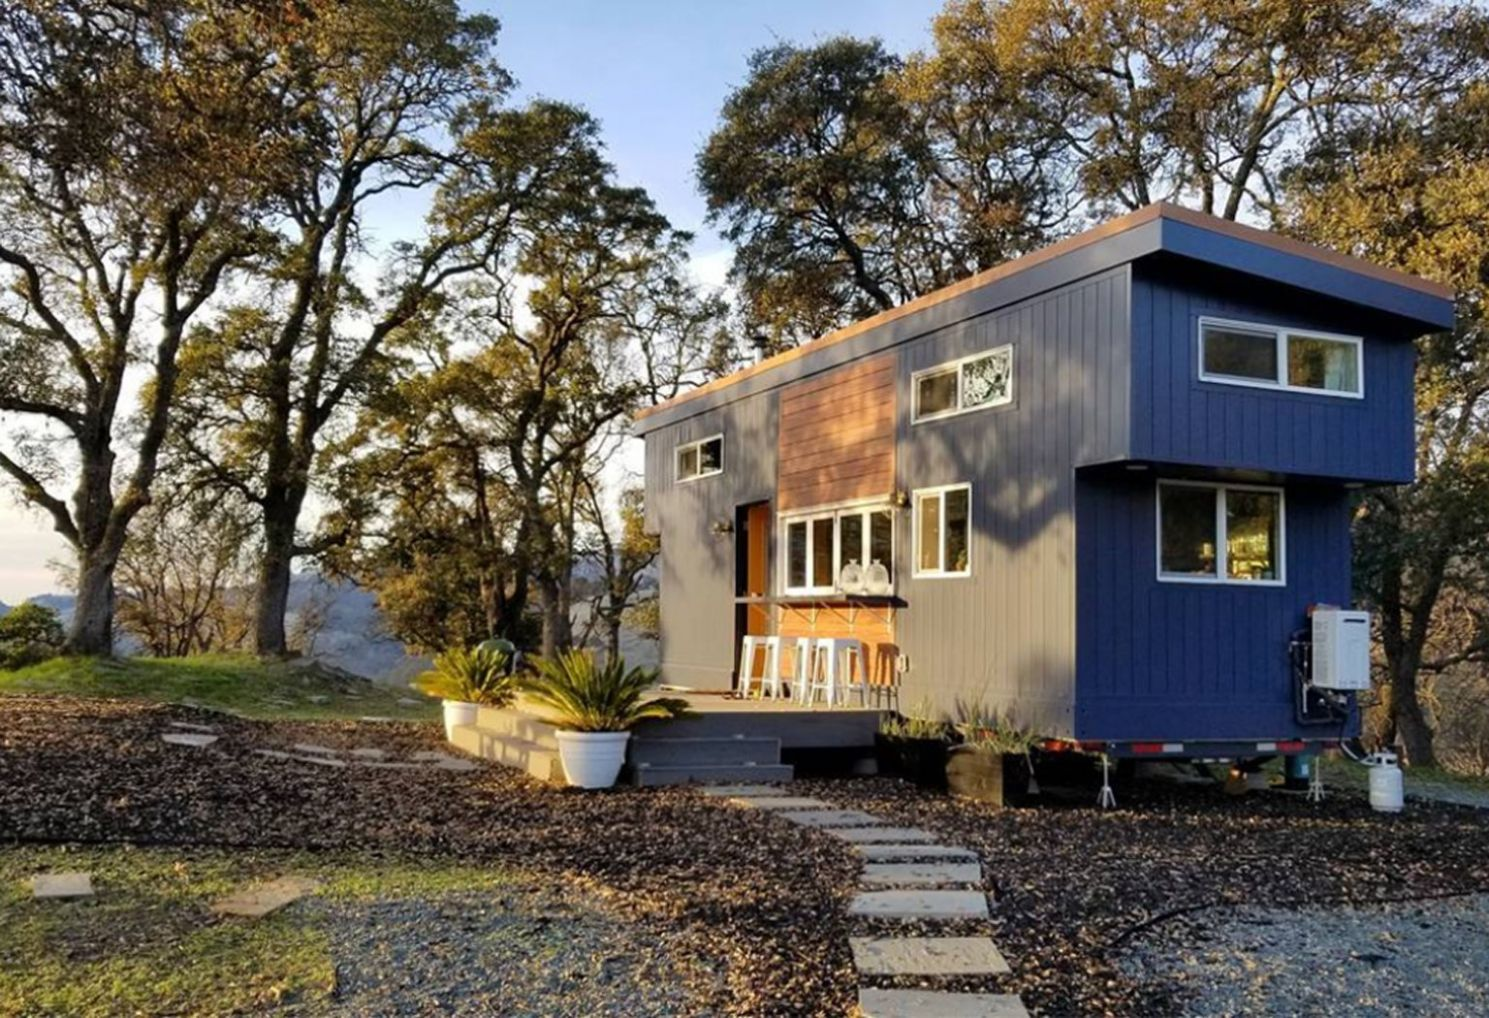 How do I find land for my tiny house? - #AskTheDreamTeam - Dream ..